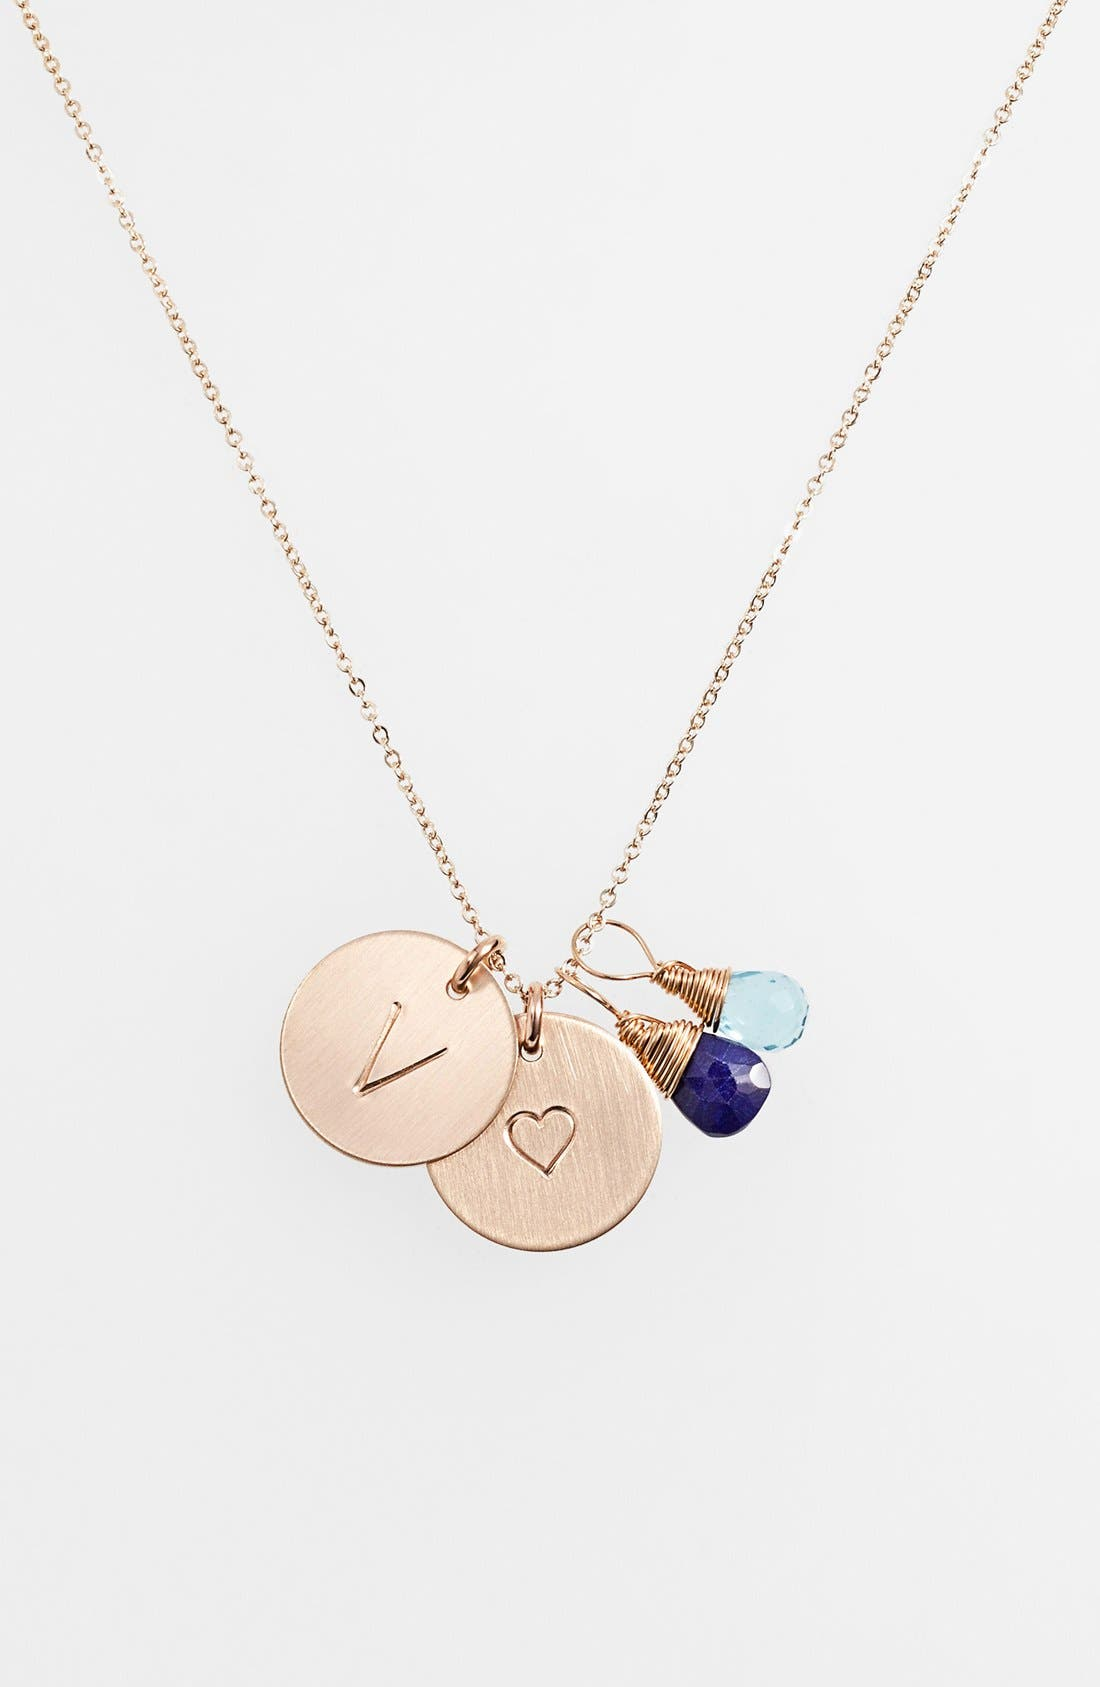 Alternate Image 1 Selected - Nashelle Blue Quartz Initial & Heart 14k-Gold Fill Disc Necklace